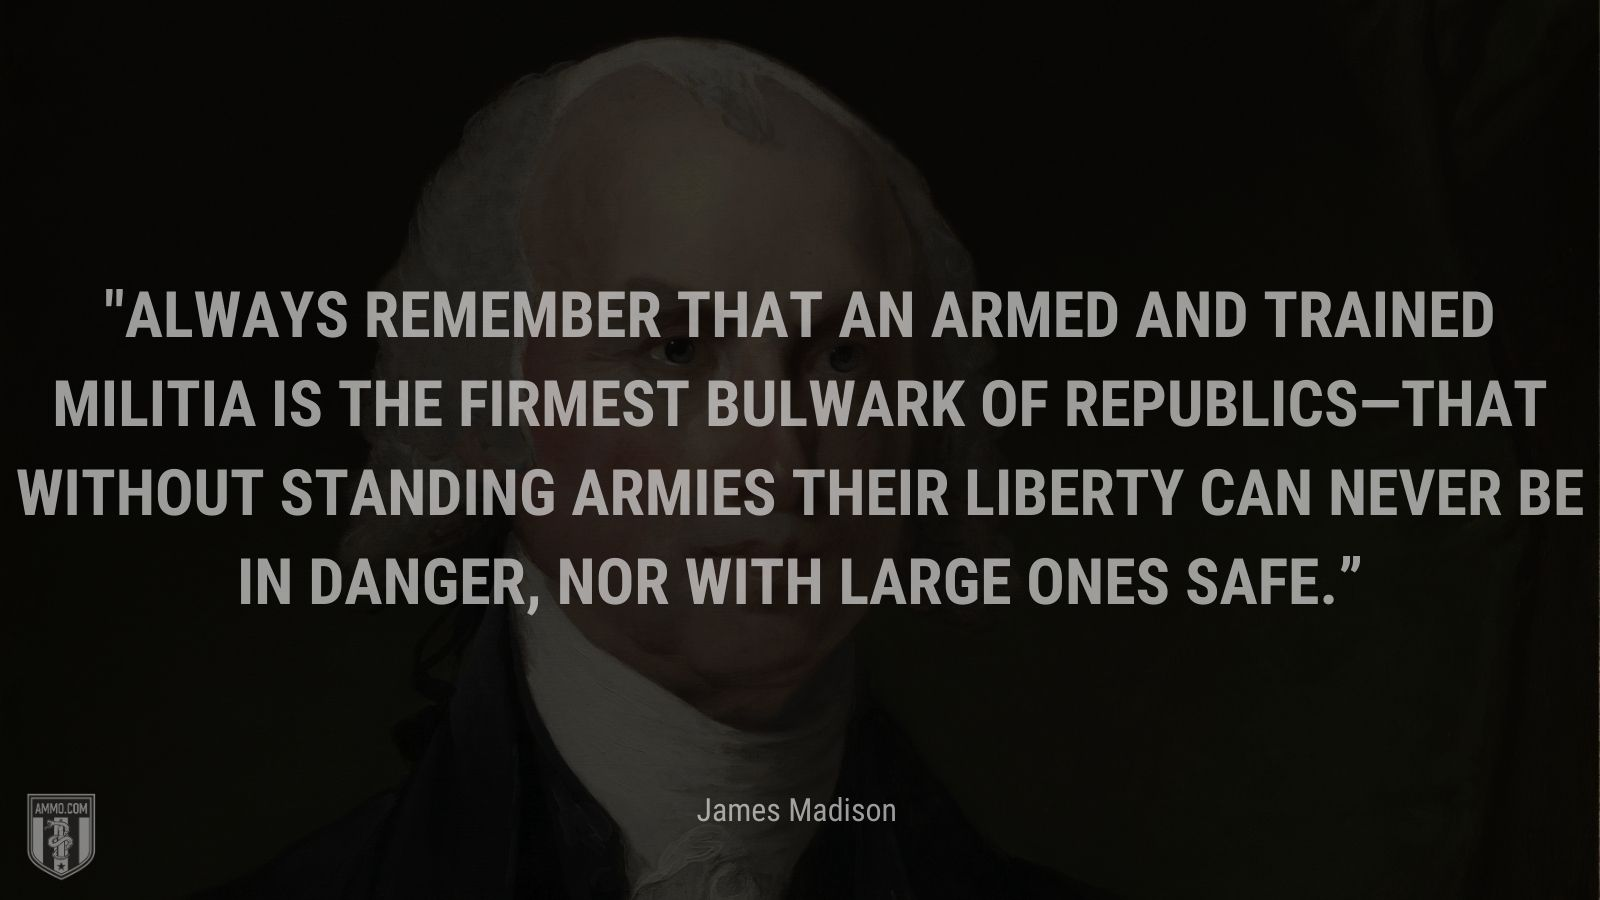 """""""Always remember that an armed and trained militia is the firmest bulwark of republics—that without standing armies their liberty can never be in danger, nor with large ones safe."""" - James Madison"""